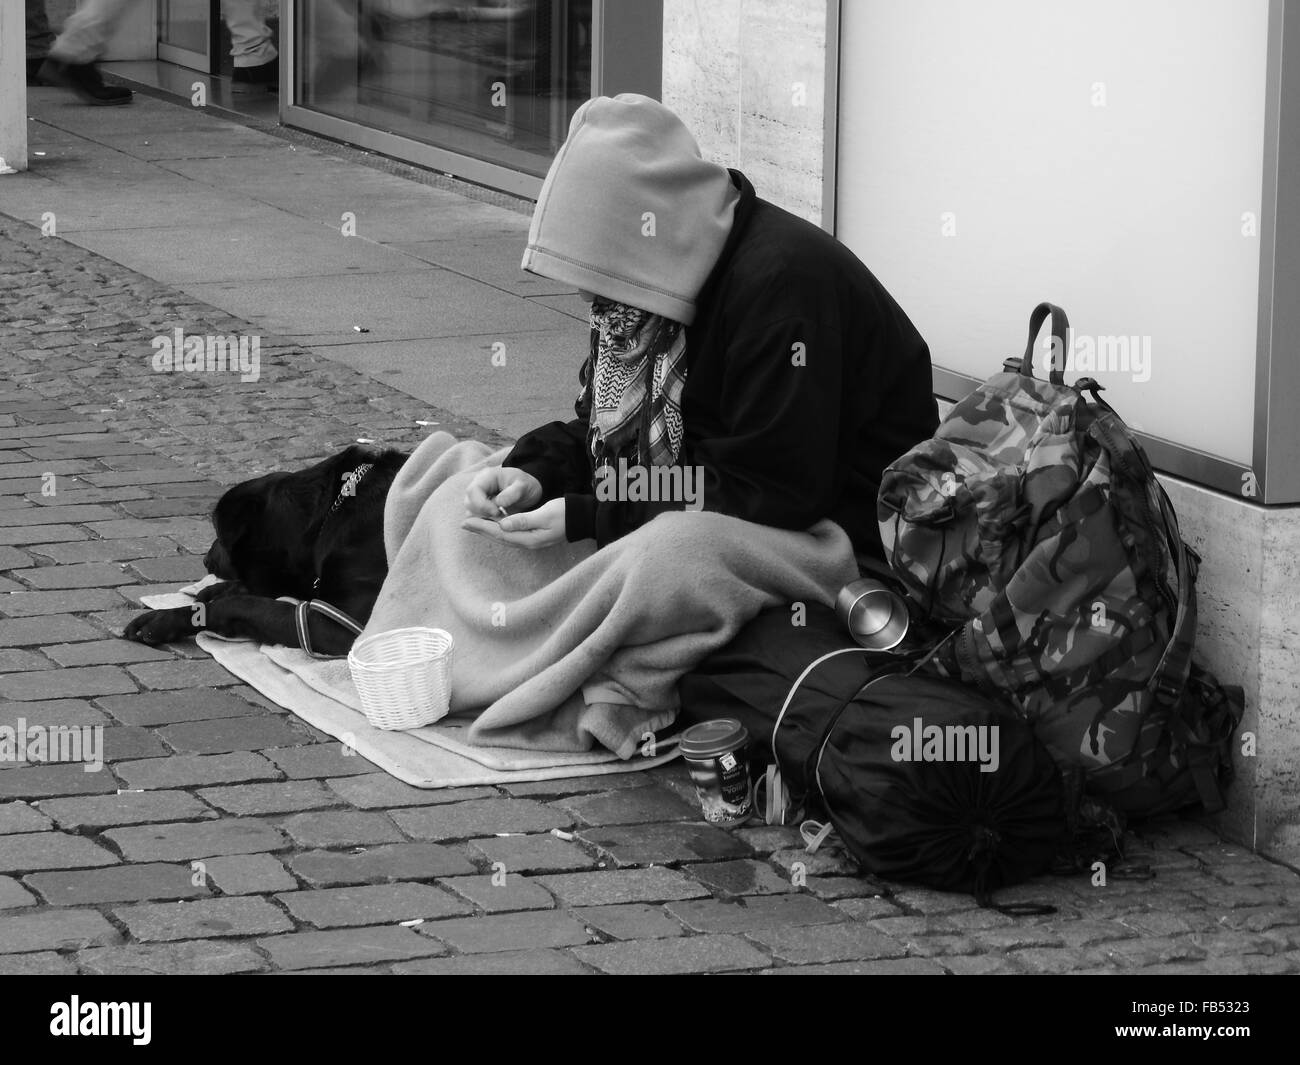 beggar with his dog sitting on the street in Bonn City, Germany - Stock Image